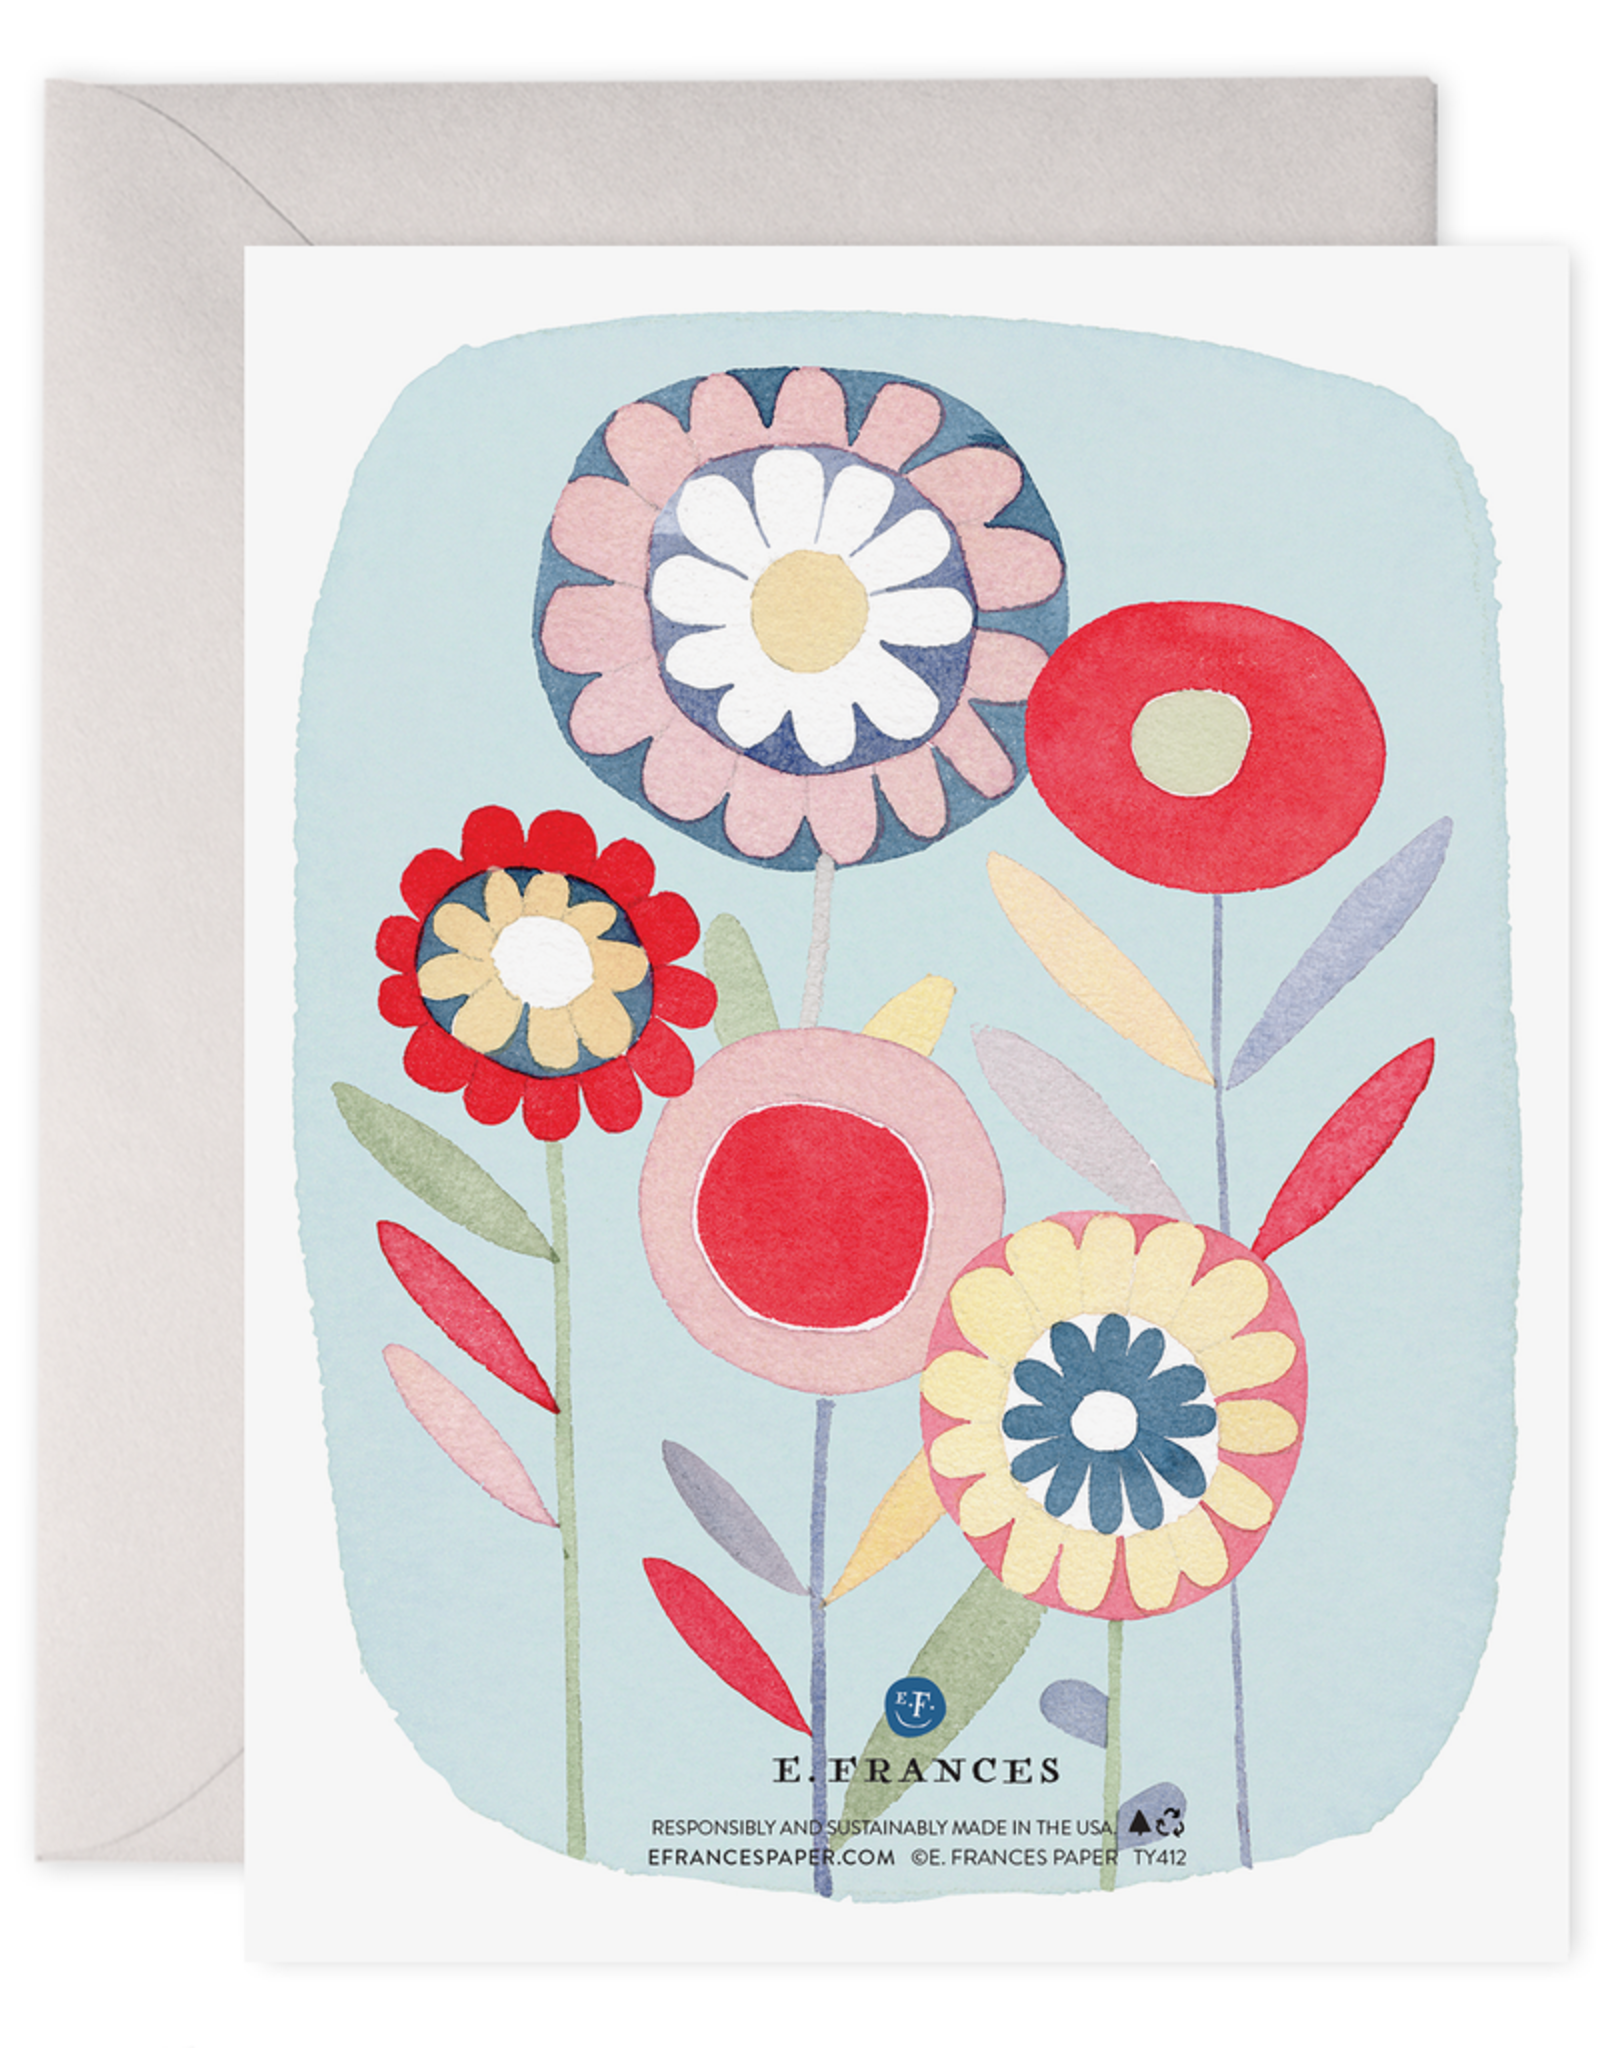 E. Frances Paper Thank You Card - Folky Flowers